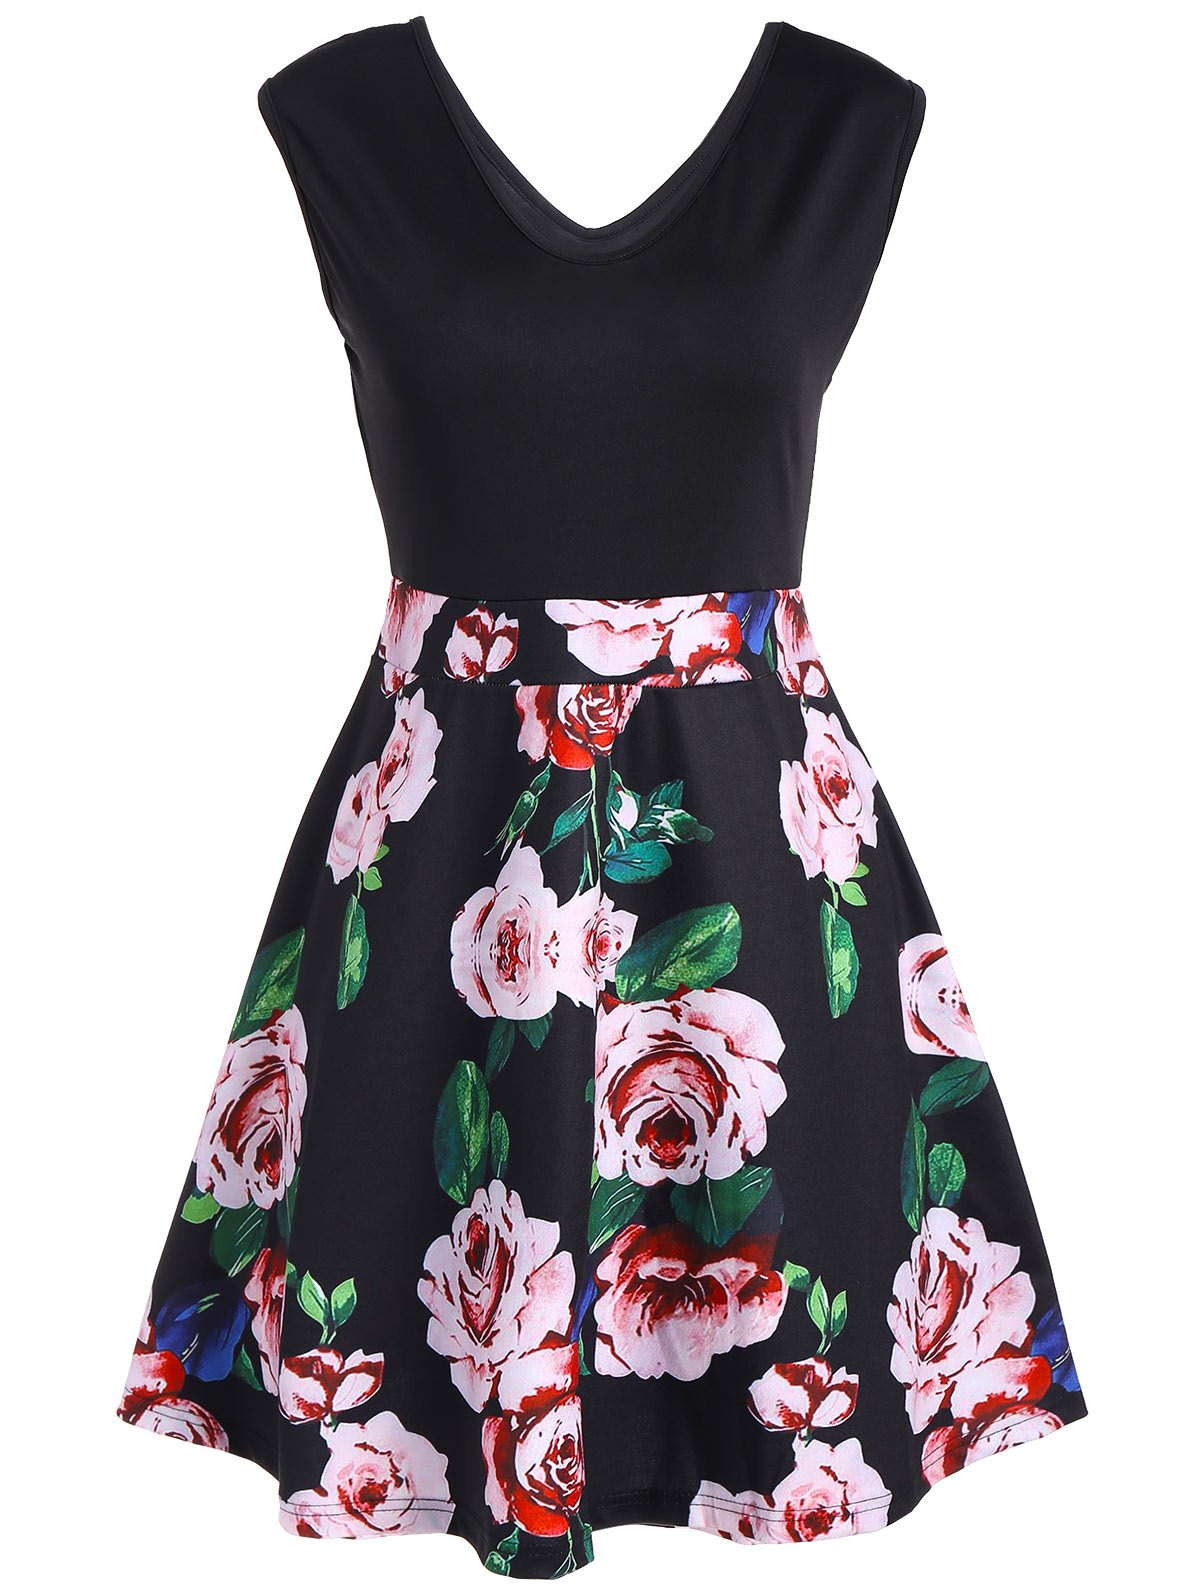 V Neck Floral Print Sleeveless Flare Dress - BLACK 2XL